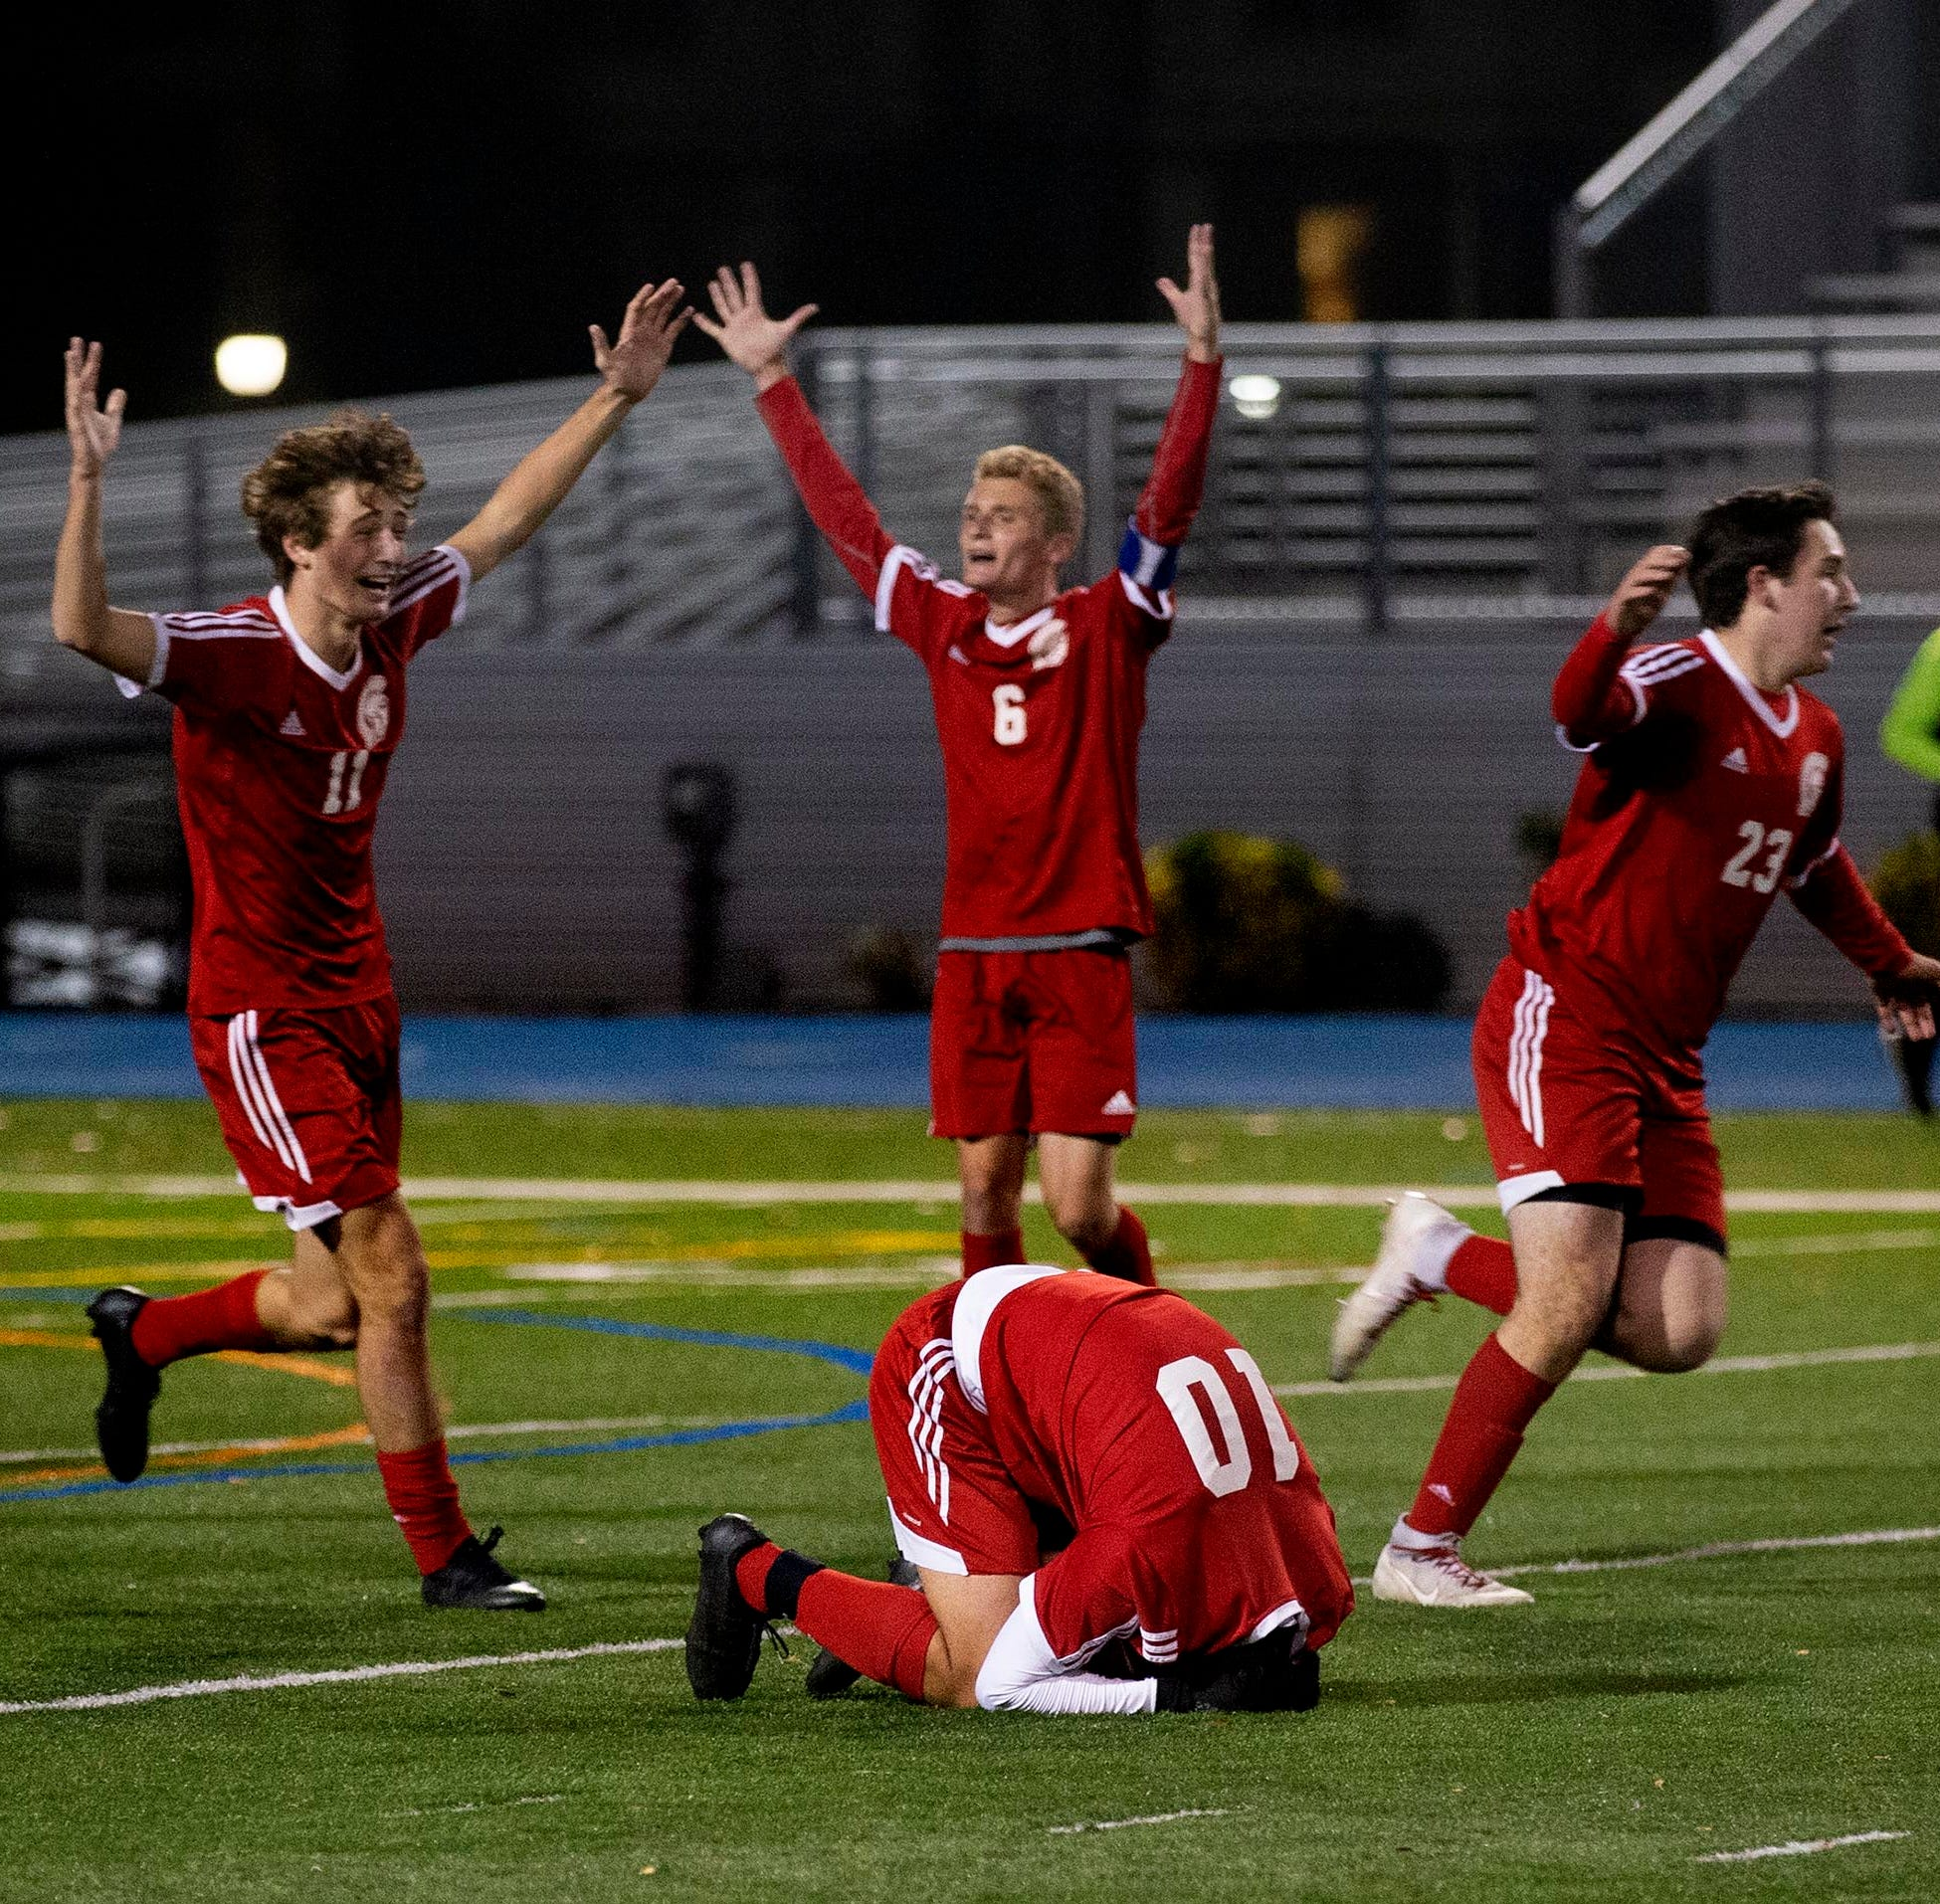 NJ boys soccer: Ocean Township wins wild state final for second ever title